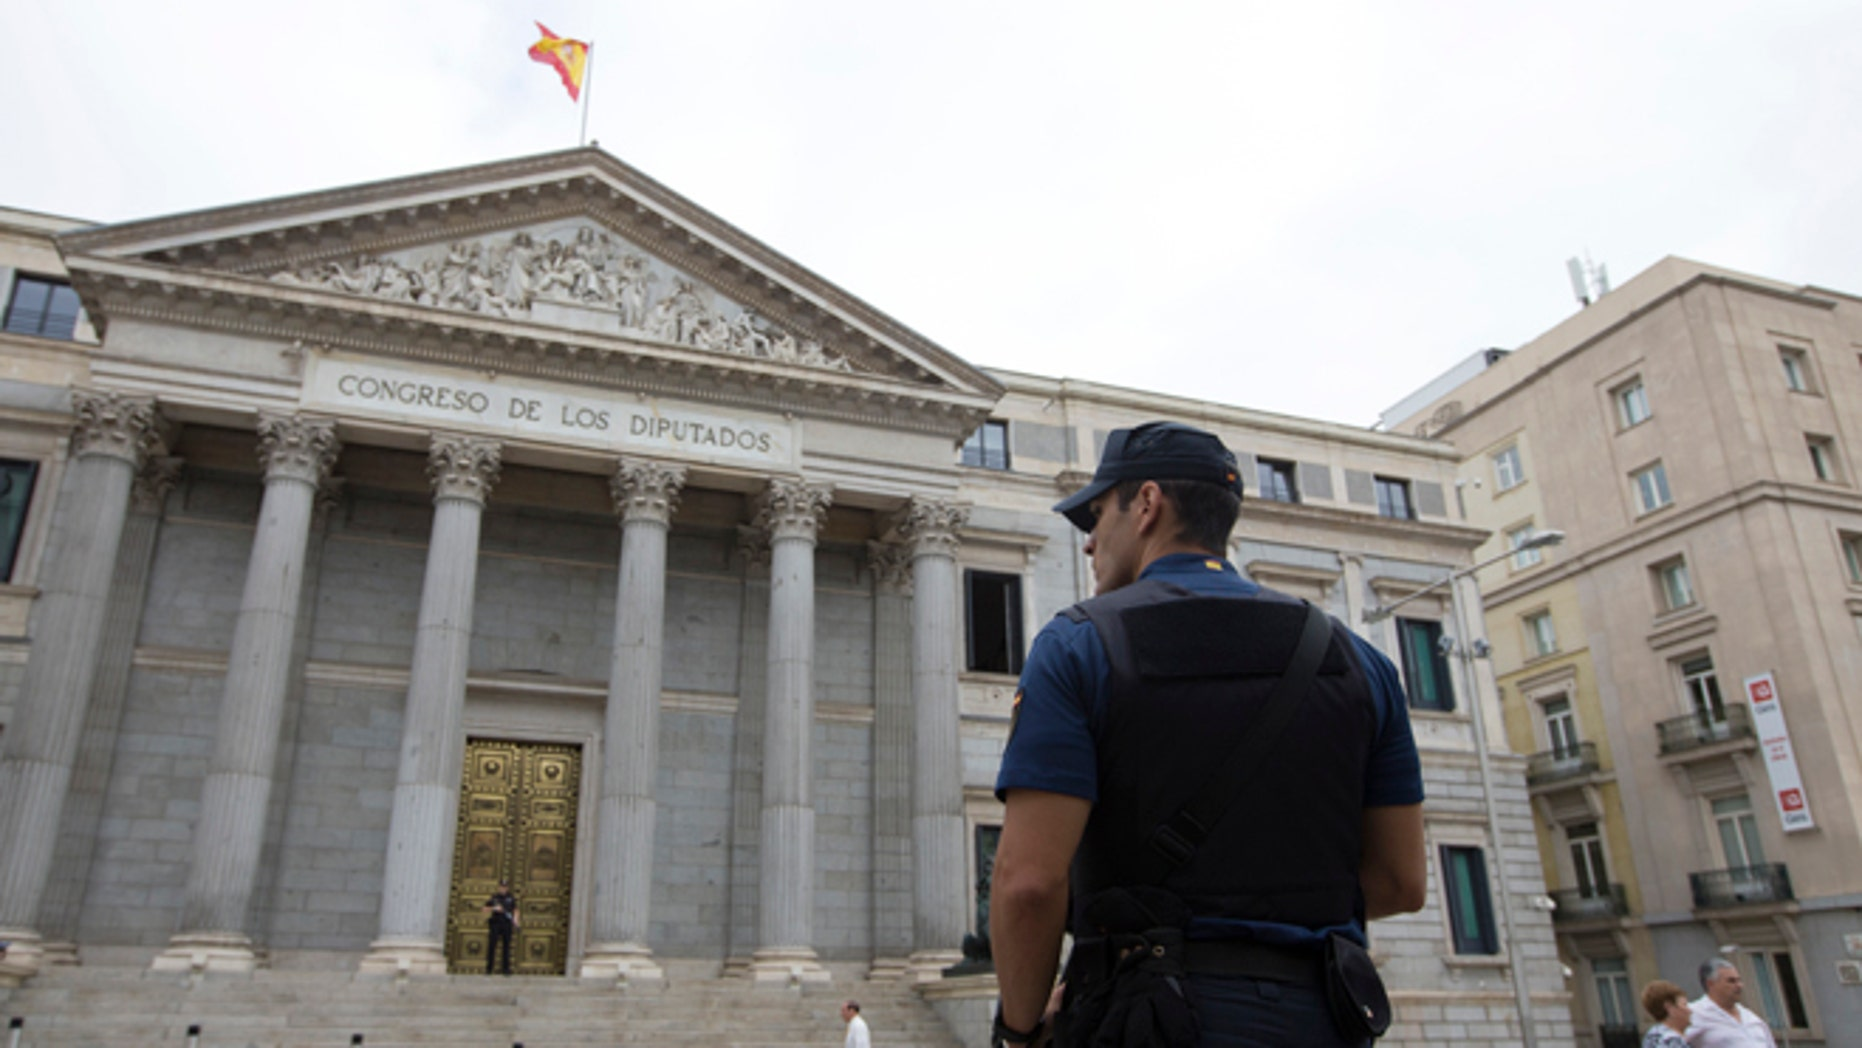 A police officer stands guard in front of the Spanish Parliament in Madrid, Spain, Tuesday, Aug. 30, 2016. Spain's acting Premier Mariano Rajoy is to start a two-day parliamentary debate later Tuesday ahead of a vote on his bid to form a minority government and end an eight-month political impasse, but the signs are he won't be successful. If he fails, he has another chance Friday when he only needs more votes in favor than against, but nothing indicates he can win that either. (AP Photo/Paul White)